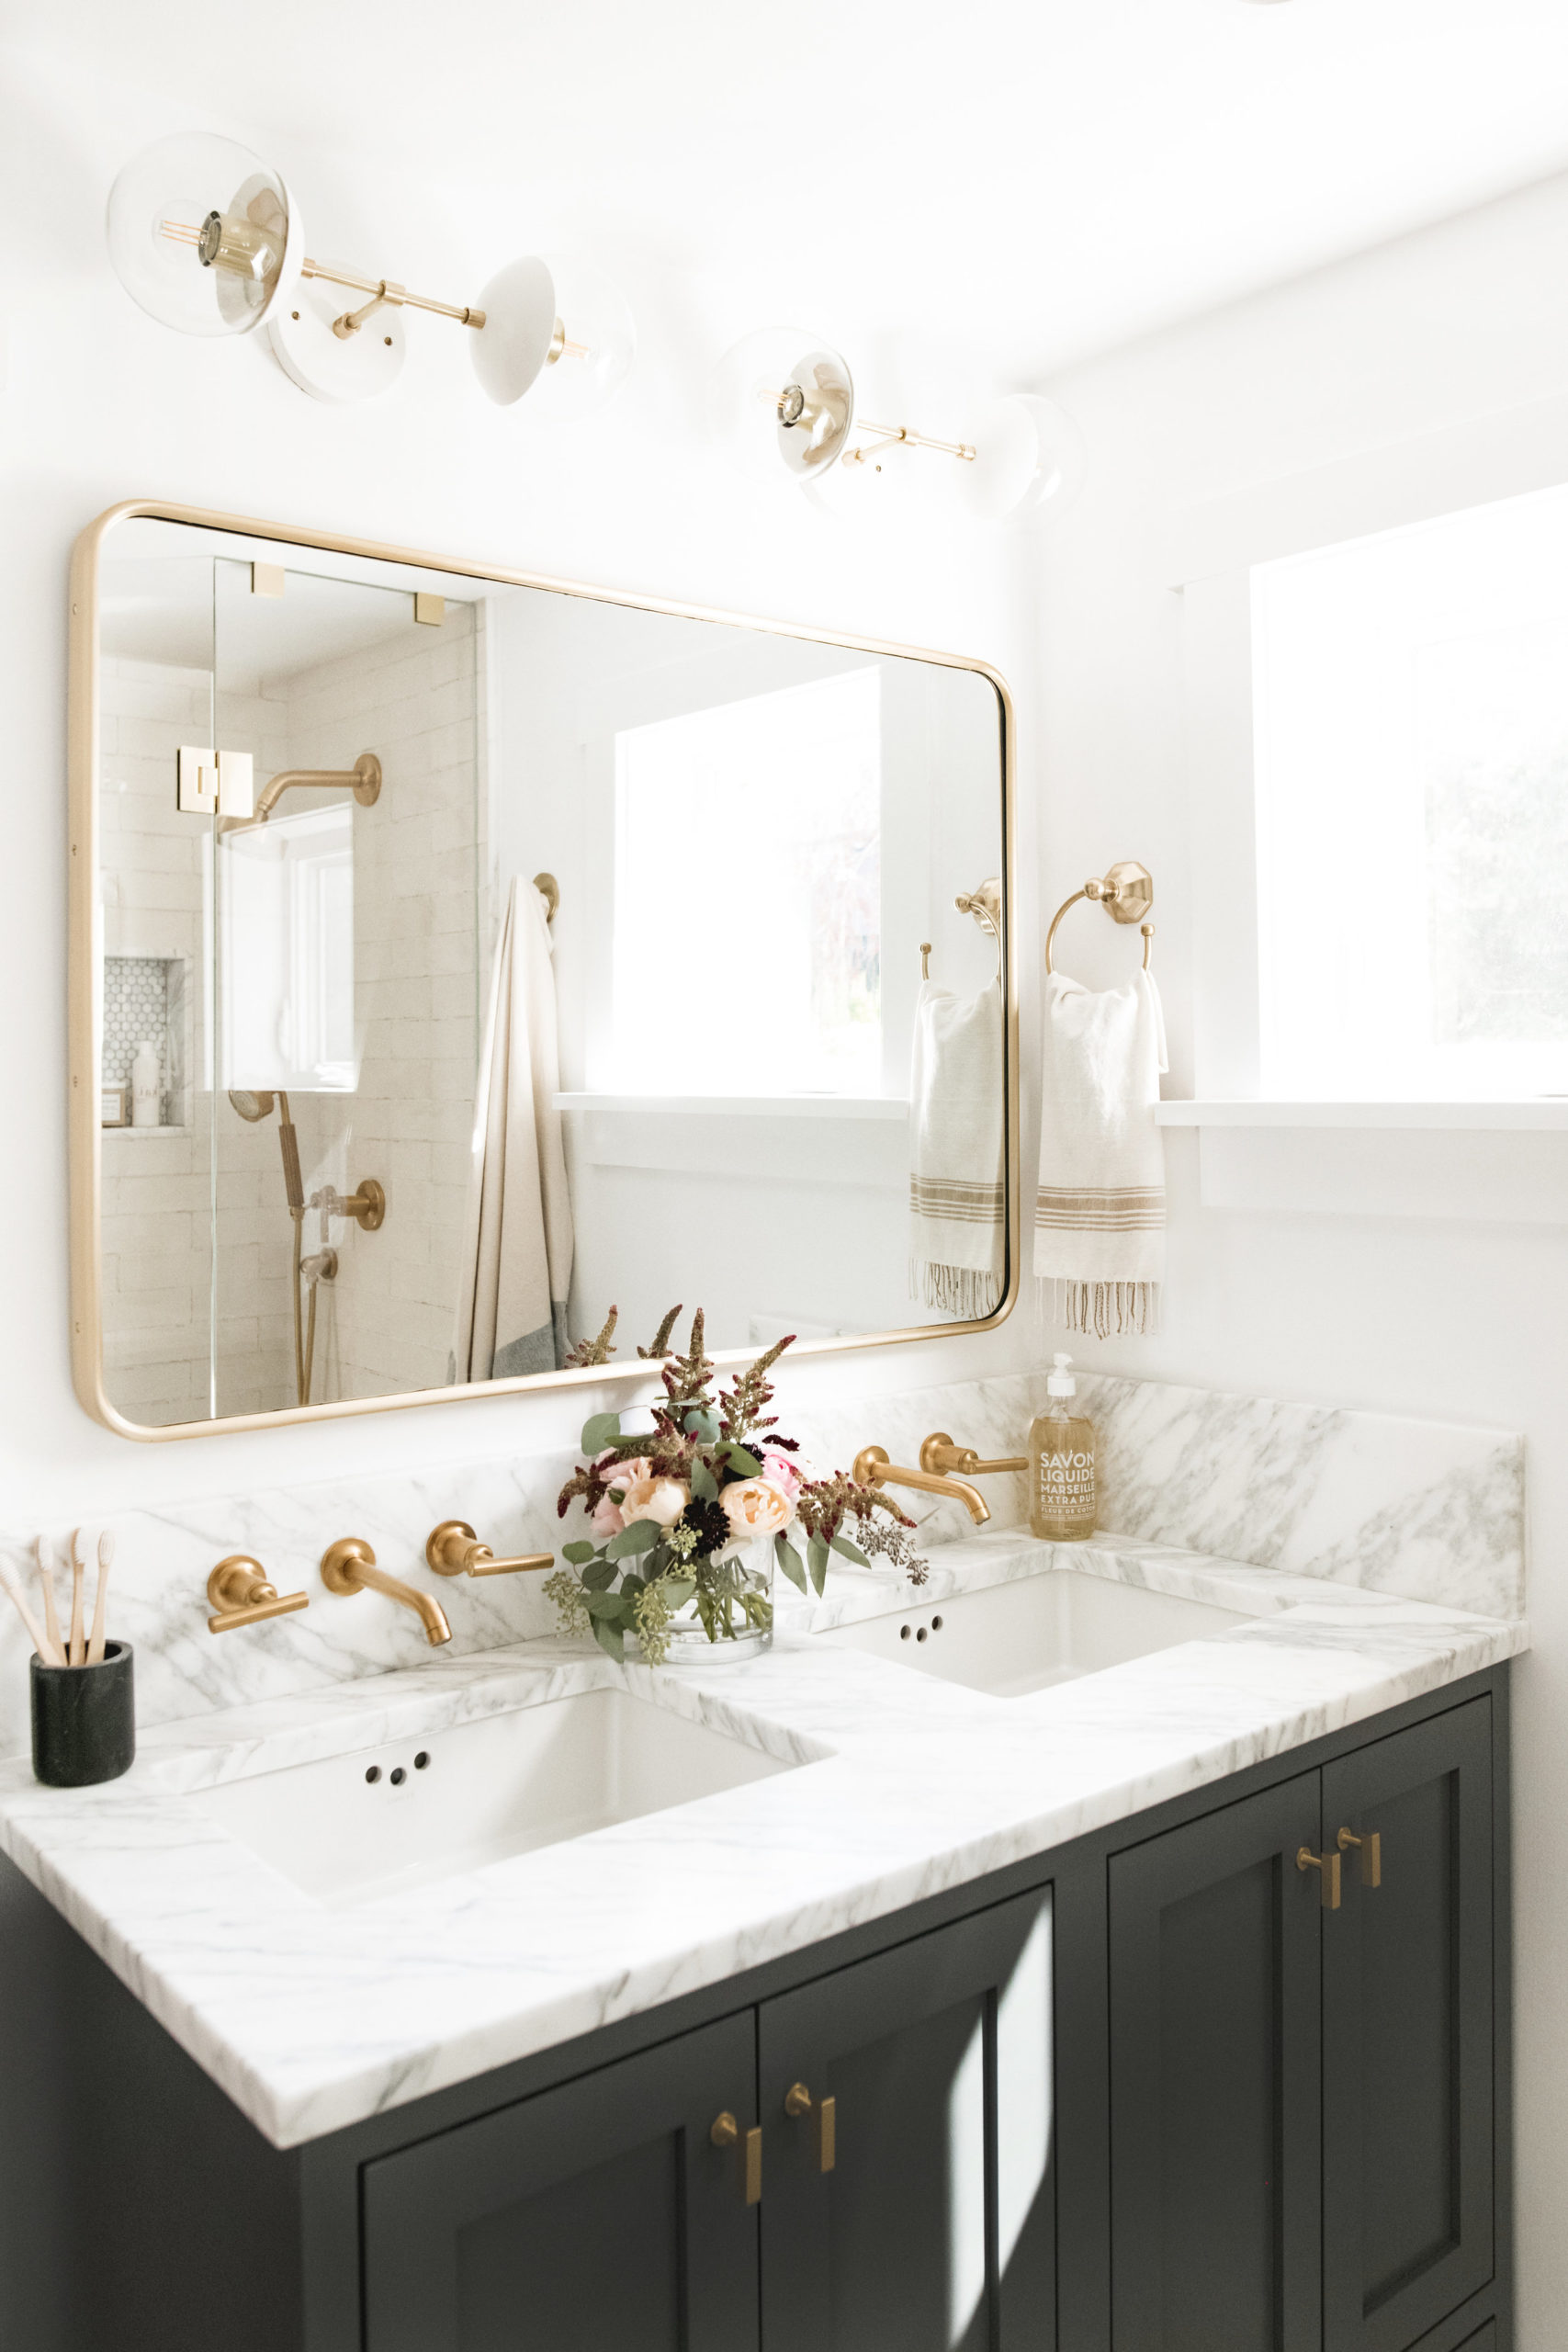 A collection of great ideas for designing your bathroom